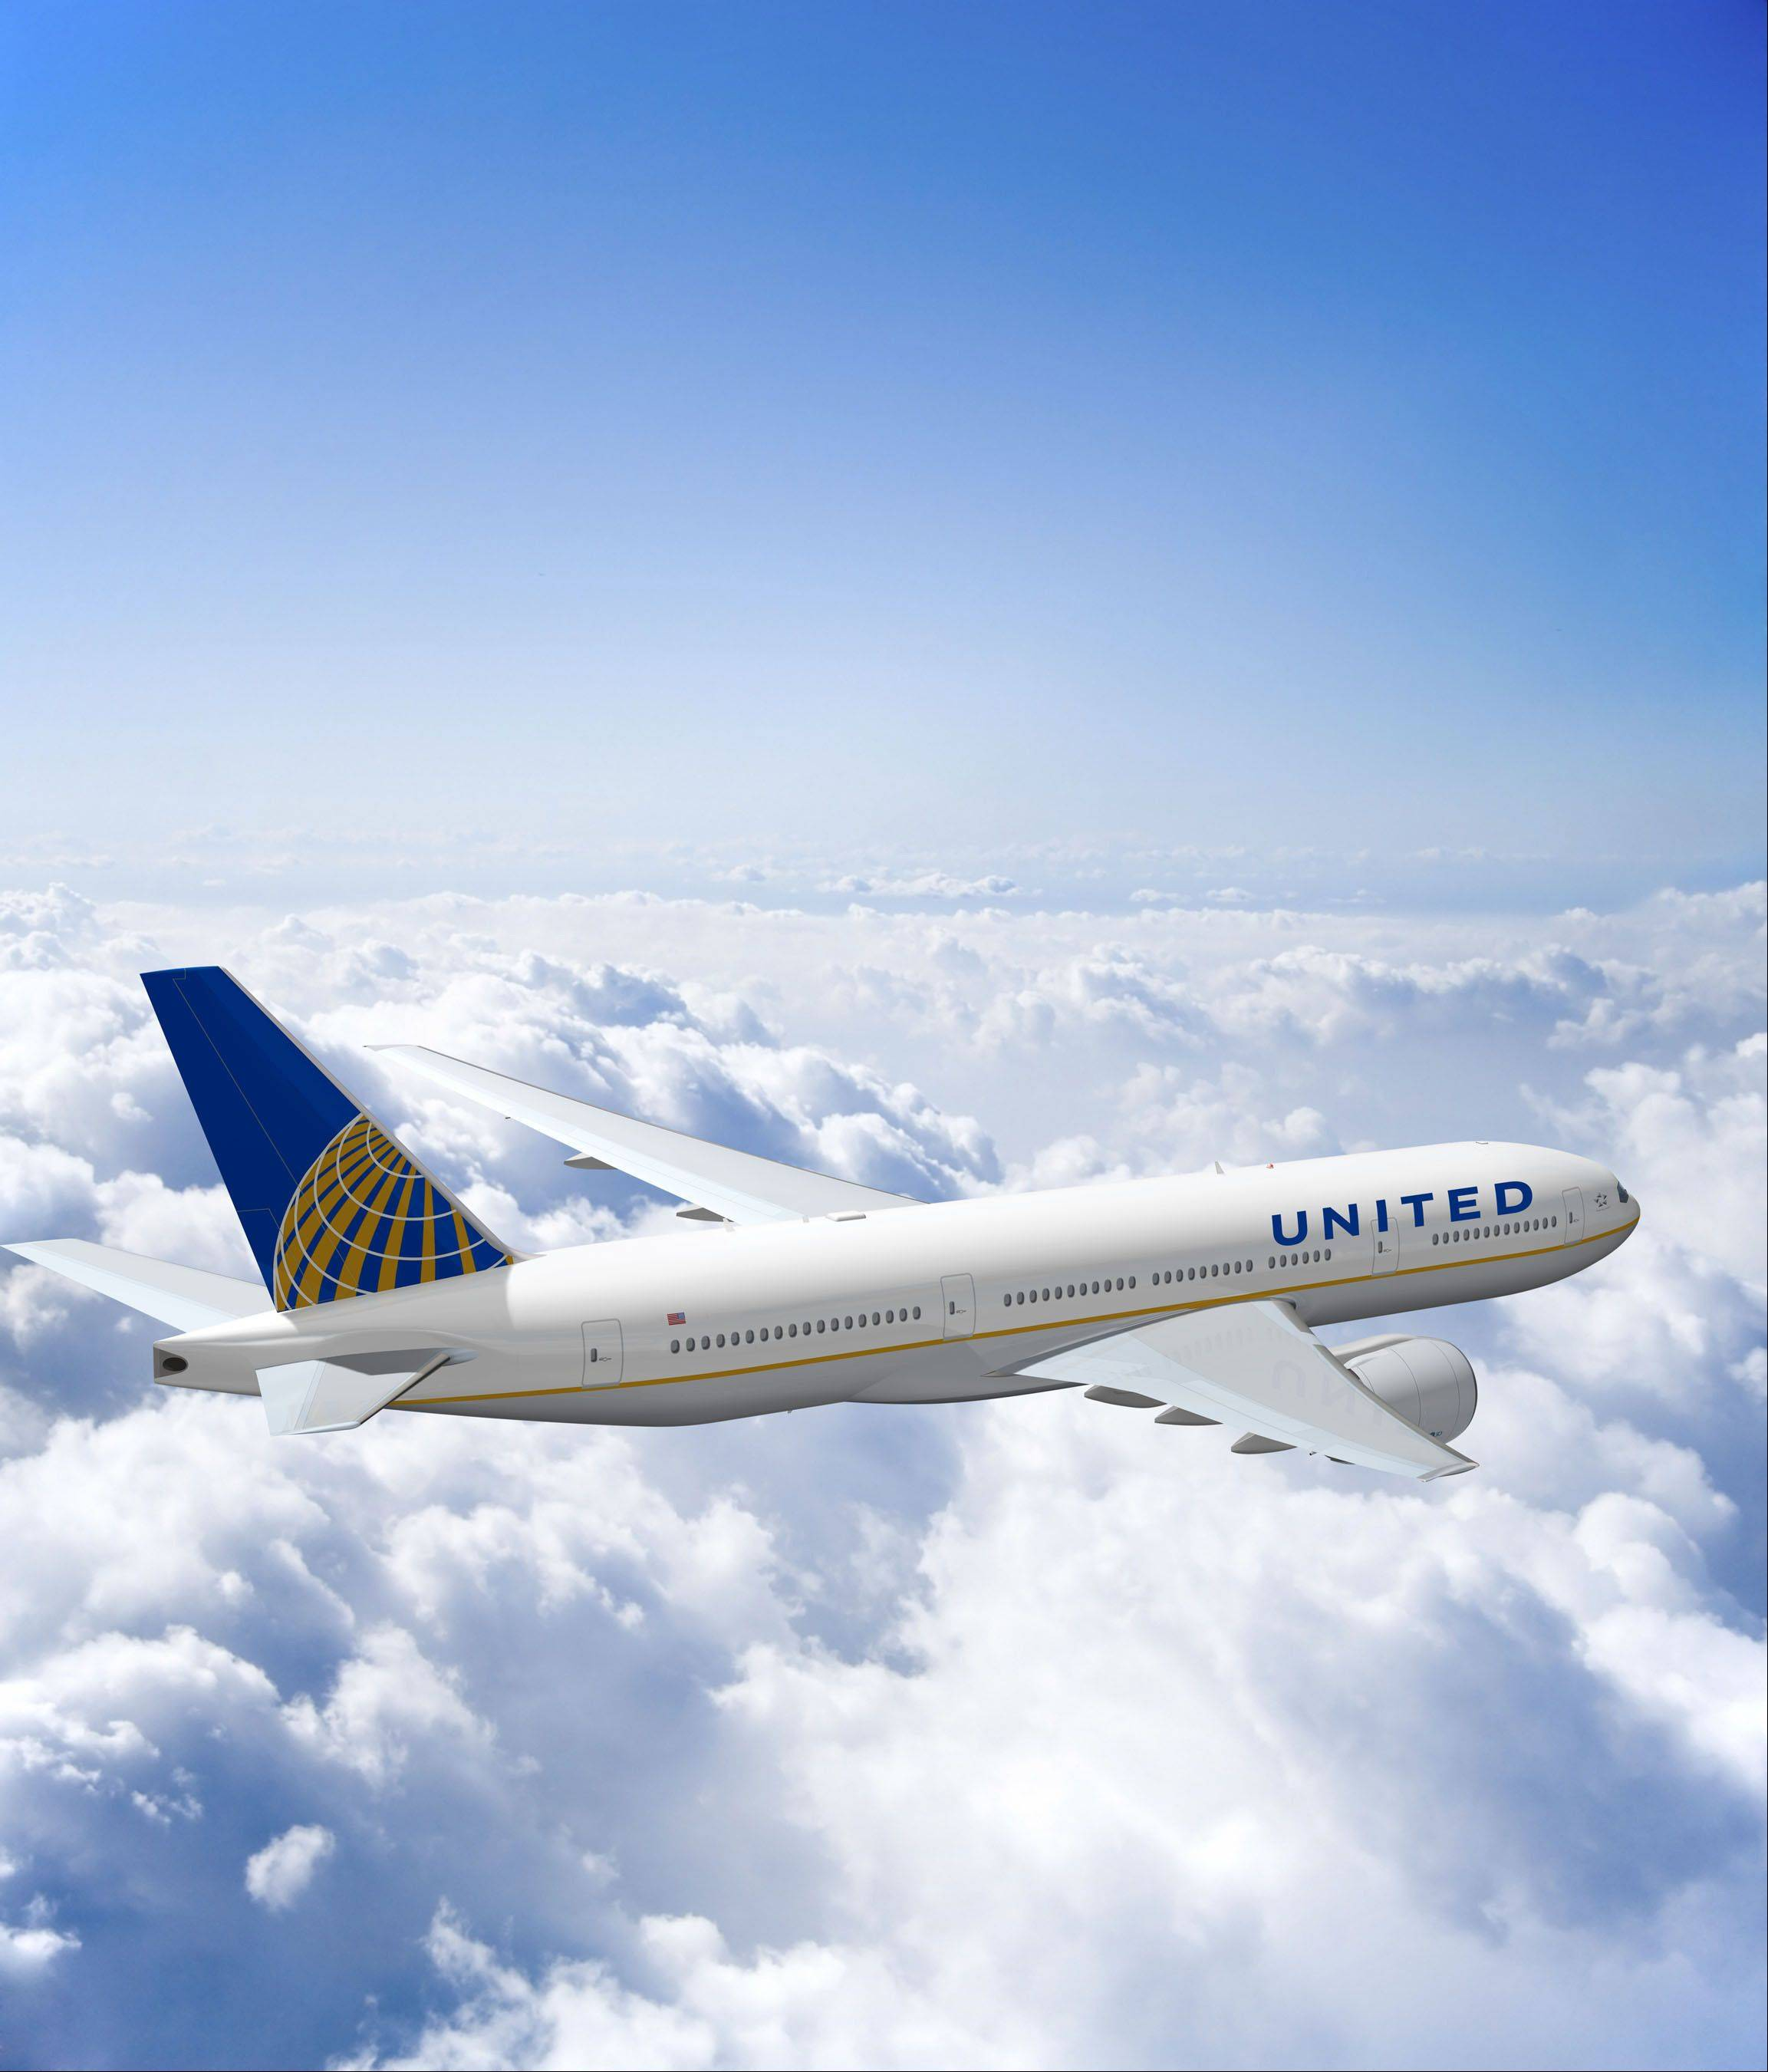 United didn't use its contingency plan to deal with long delays on the ground, and the plan was inadequate to handle the situation, the DOT said. The carrier also didn't contact airport officials or other carriers for assistance, according to the DOT news release explaining the fine.